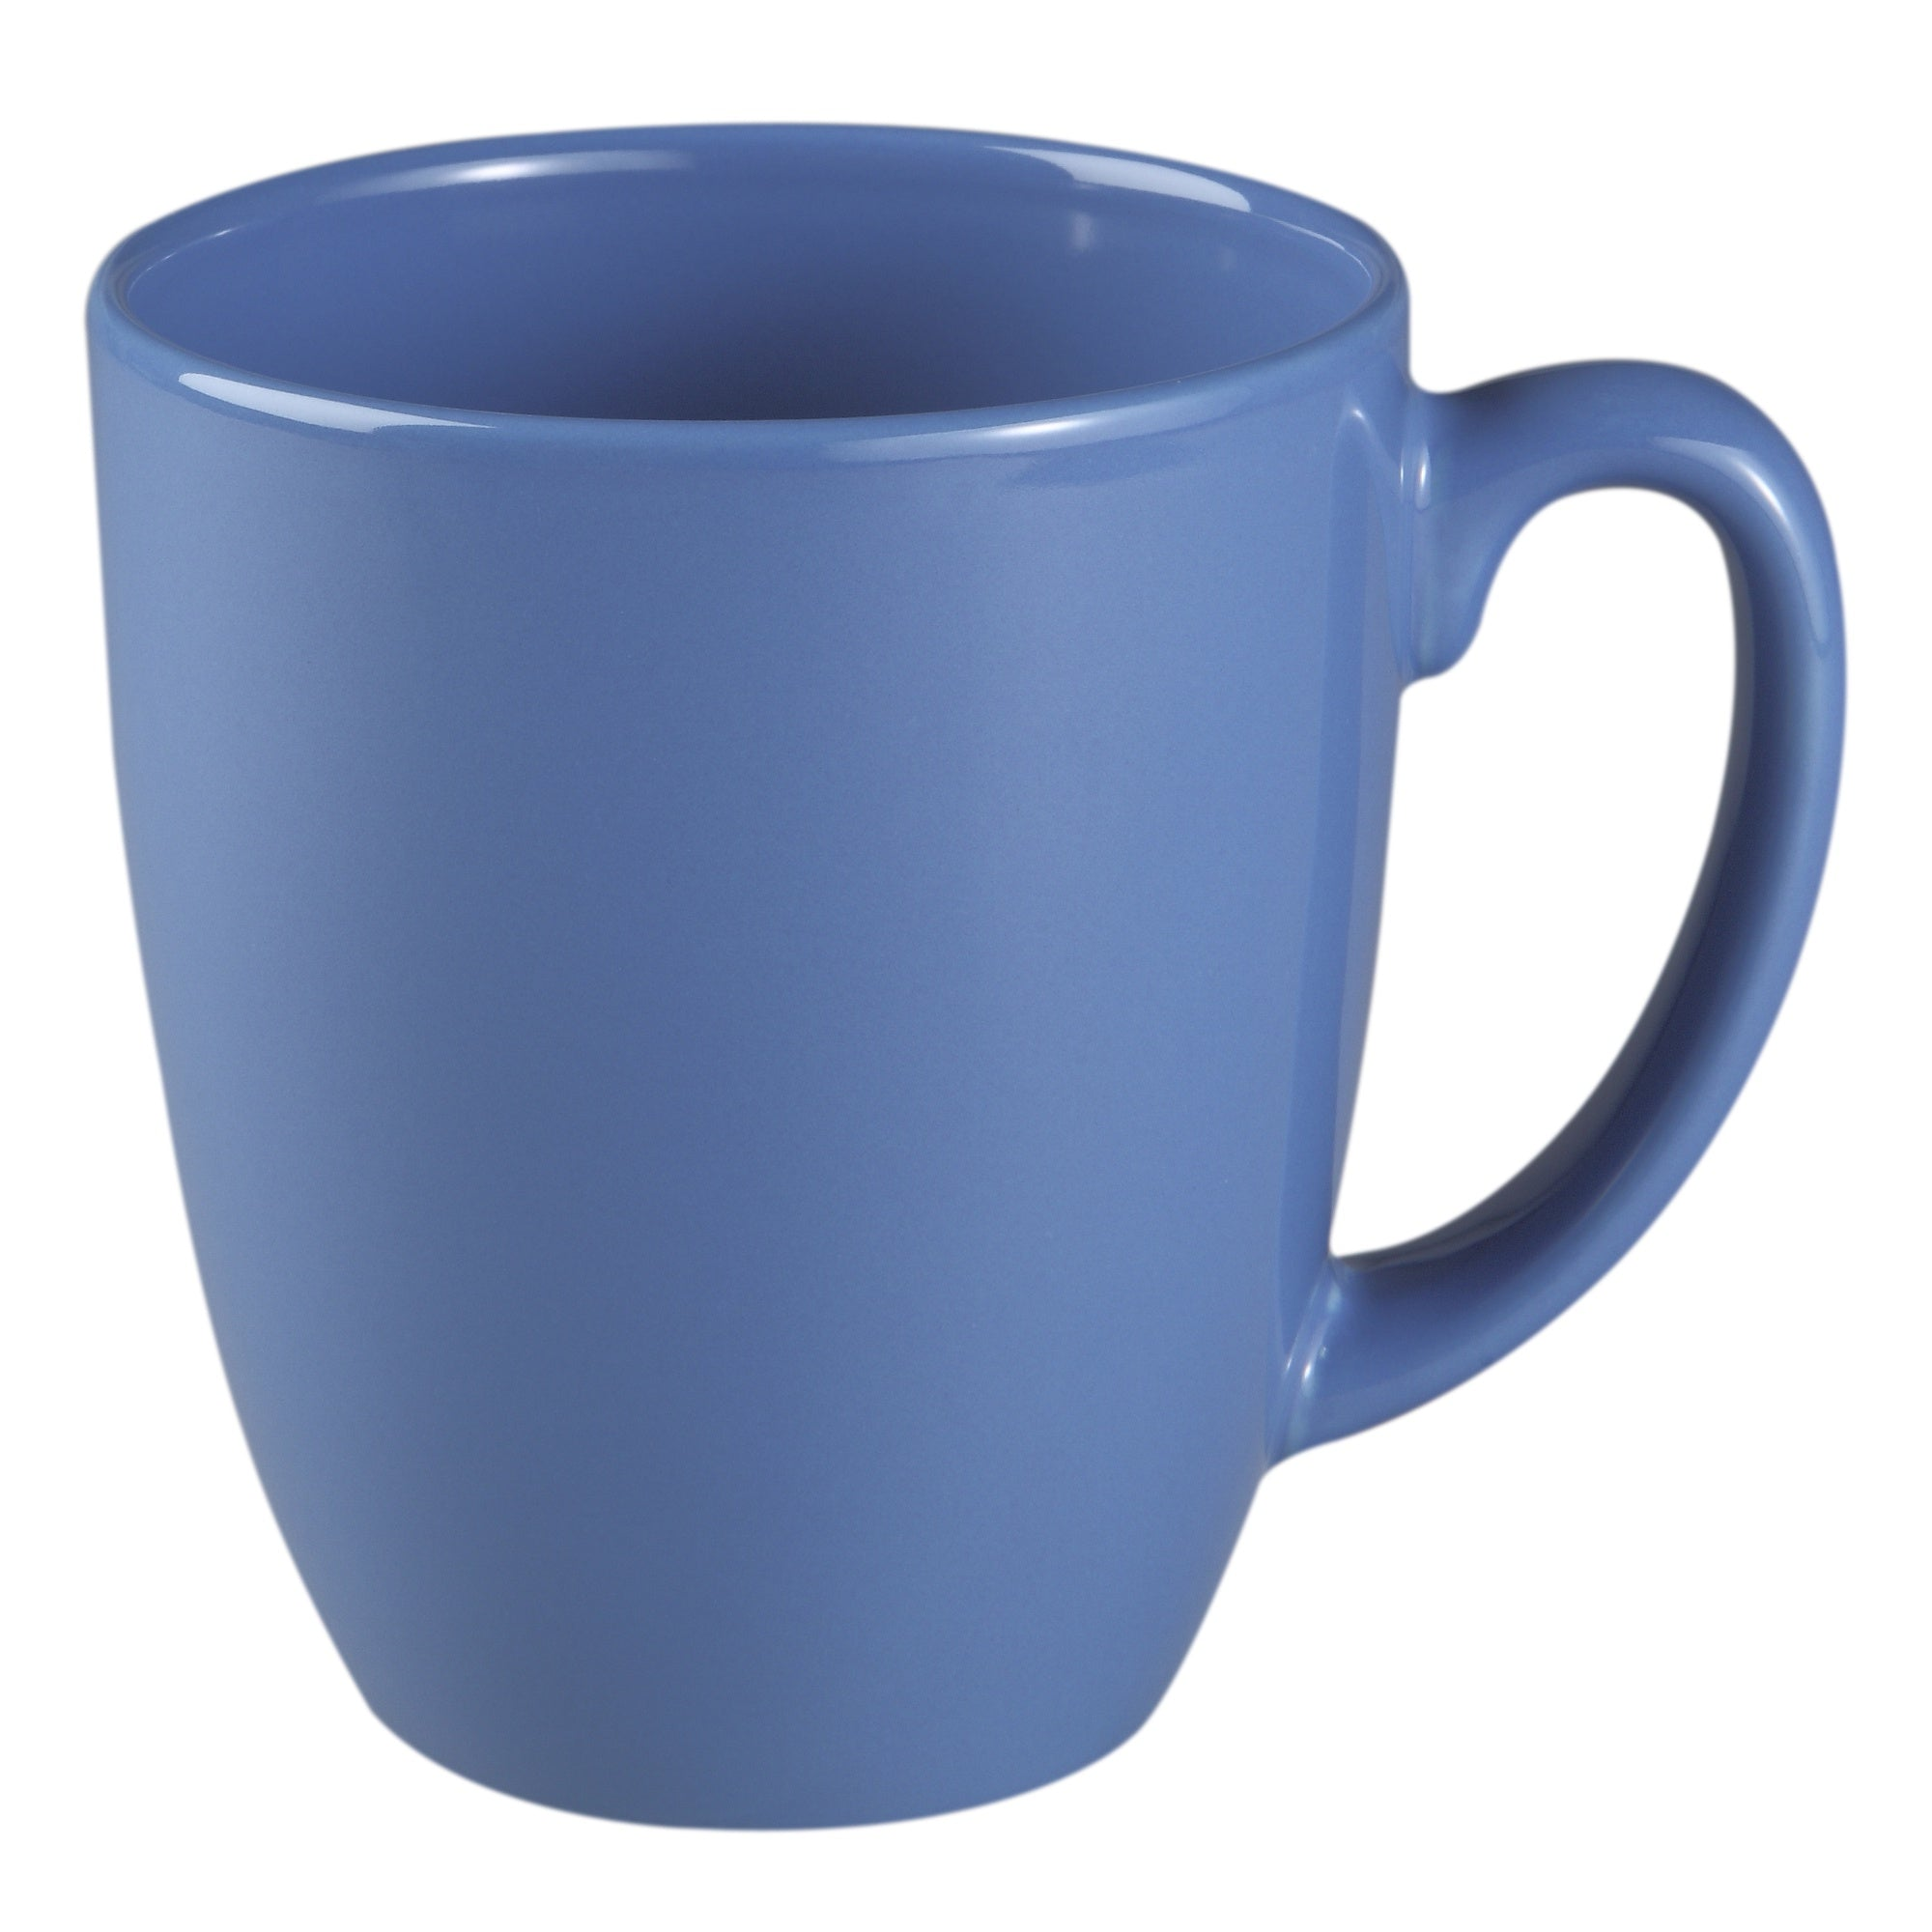 Corelle 325mL Stoneware Mug - Dark Blue-1123212